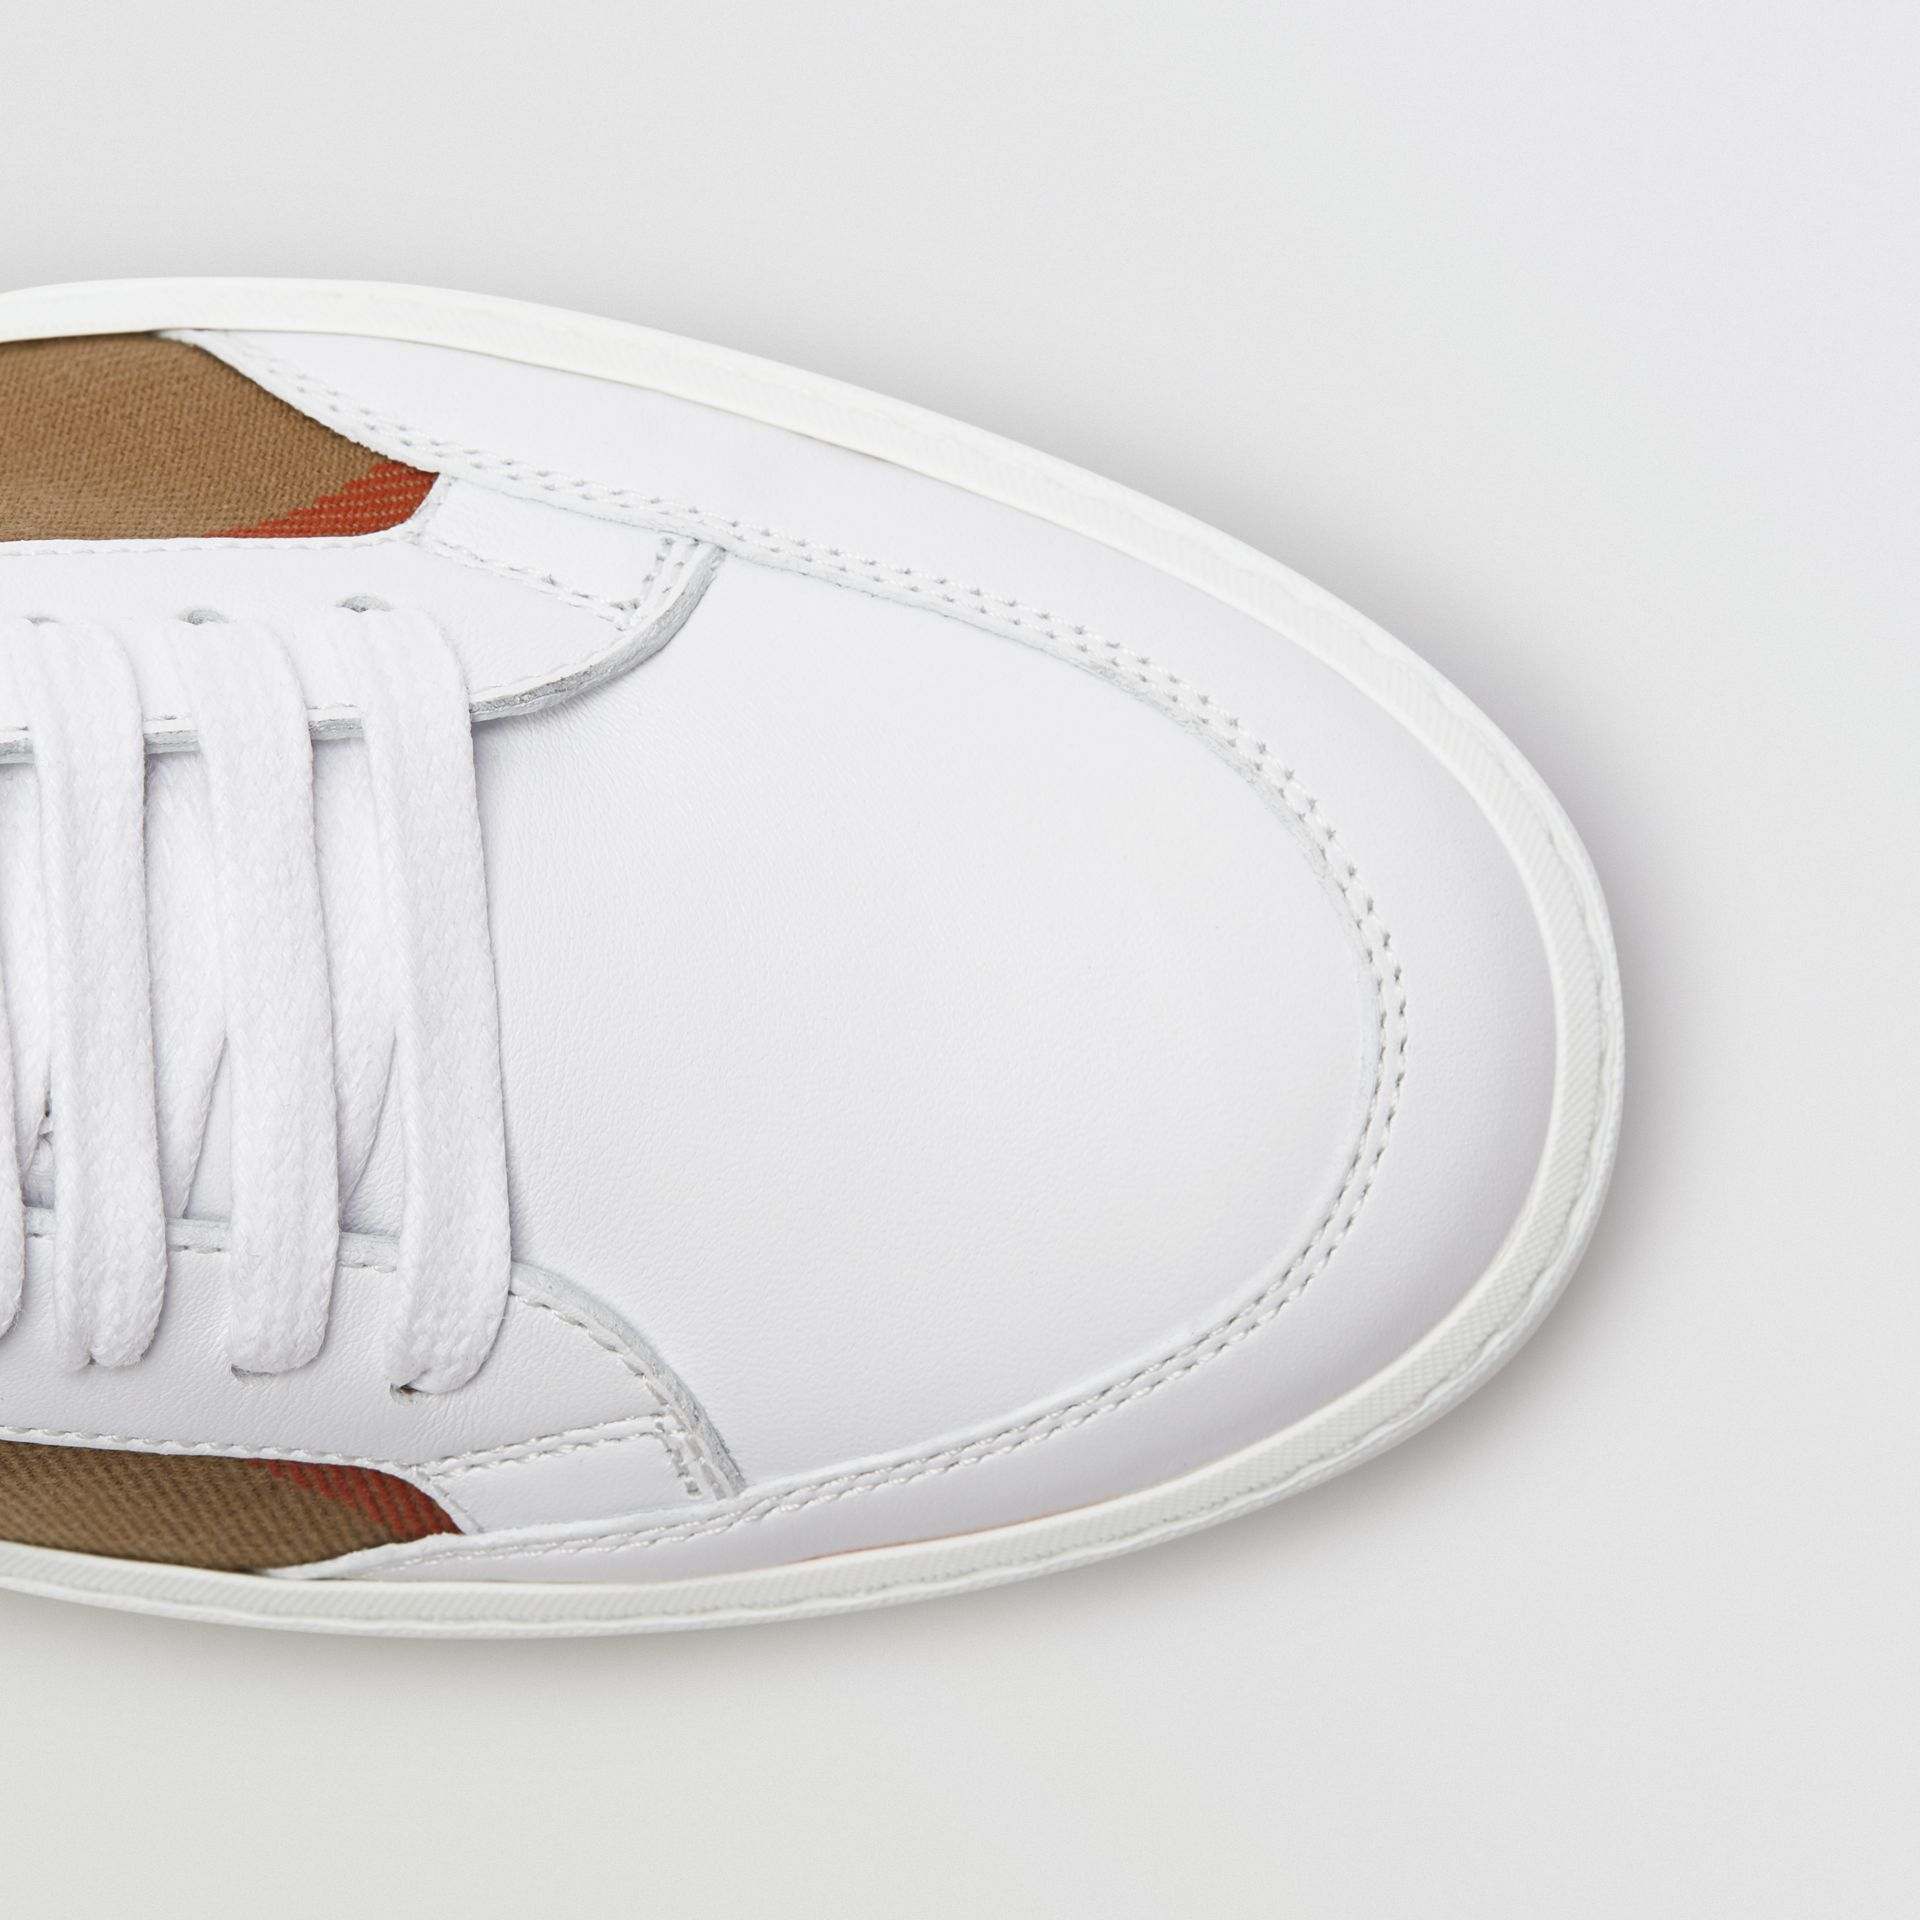 Check Detail Leather Sneakers in House Check/ Optic White - Women | Burberry Canada - gallery image 1